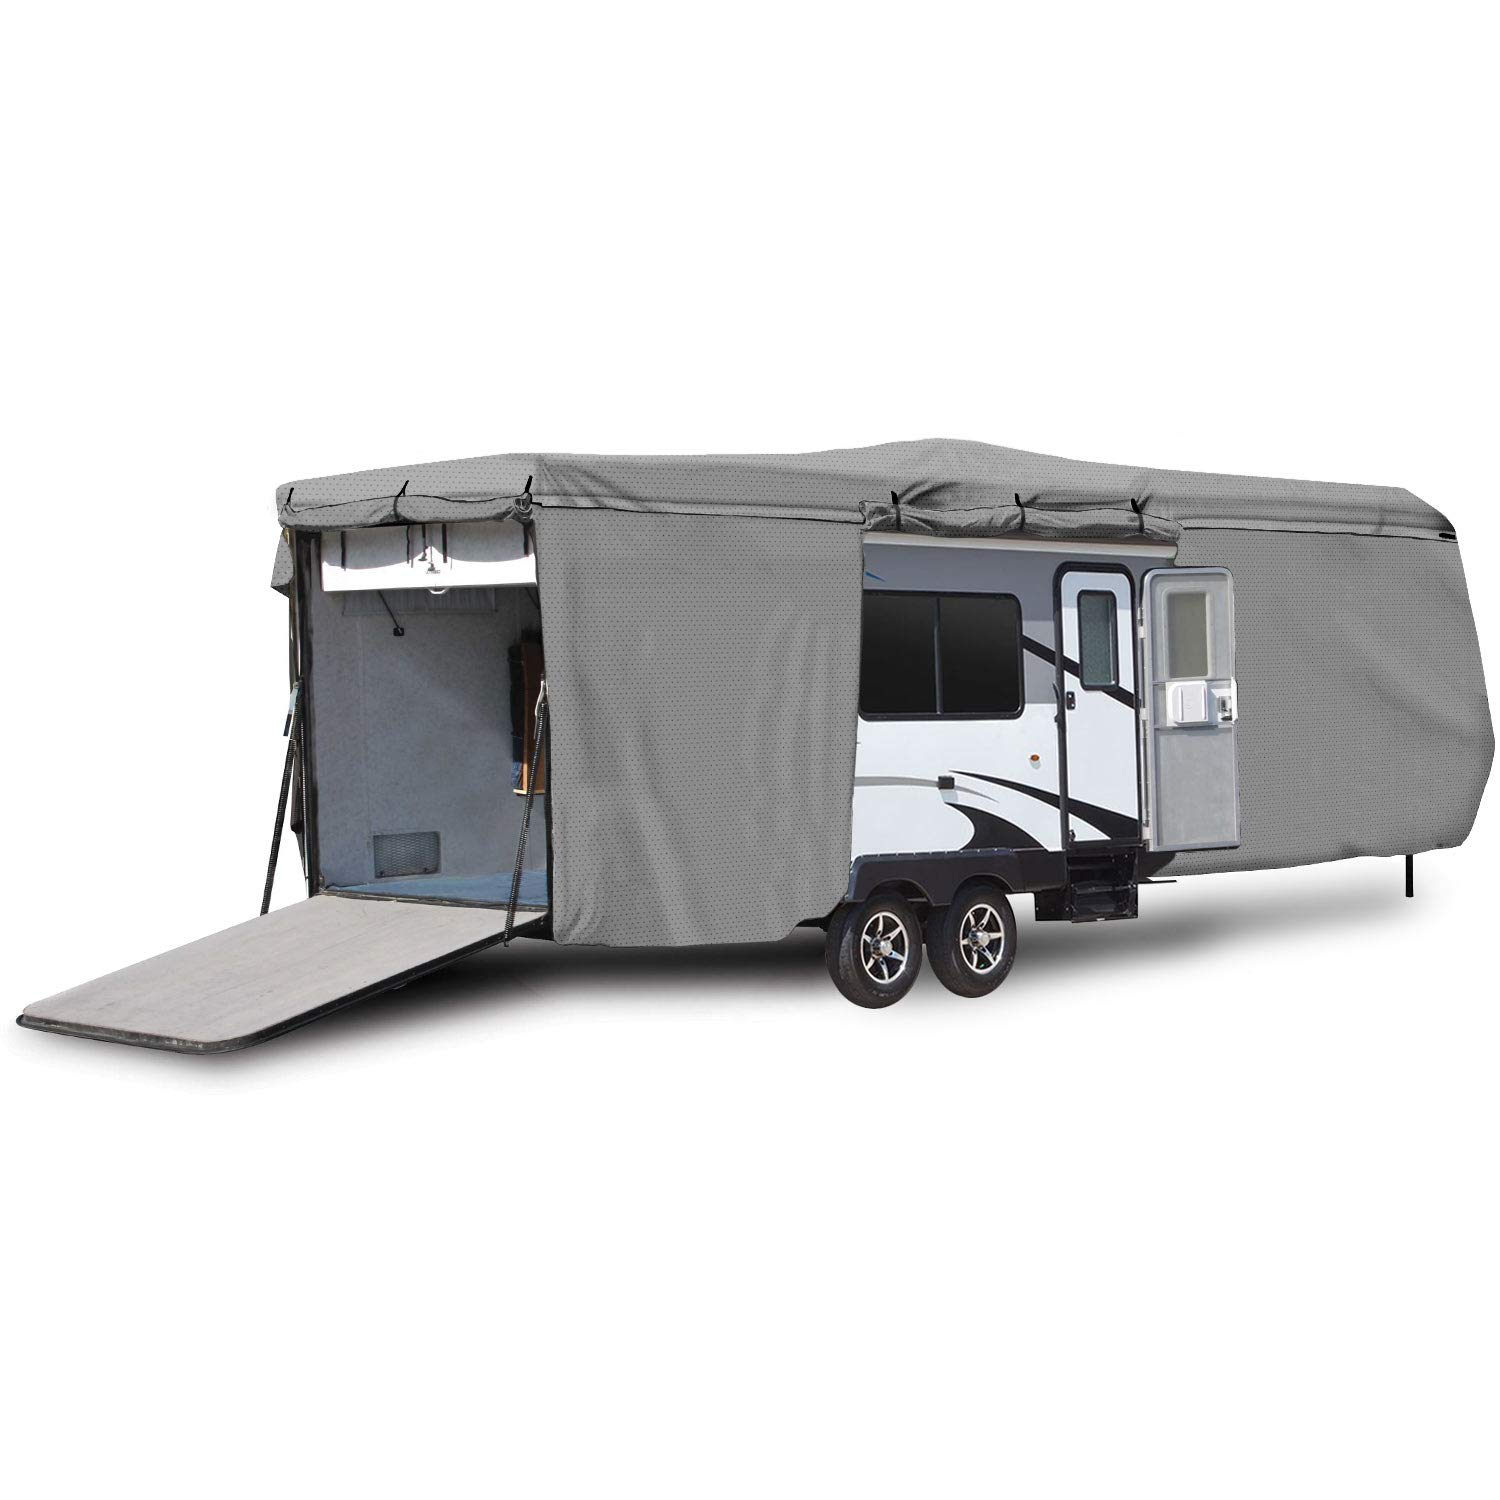 Waterproof Superior RV Motorhome Travel Trailer/Toy Hauler Cover Fits Length 18'-20' Travel Trailer Camper Zippered Panels Allow Access To The Door, Engine, Side Storage Areas, and Ramp Door by North East Harbor